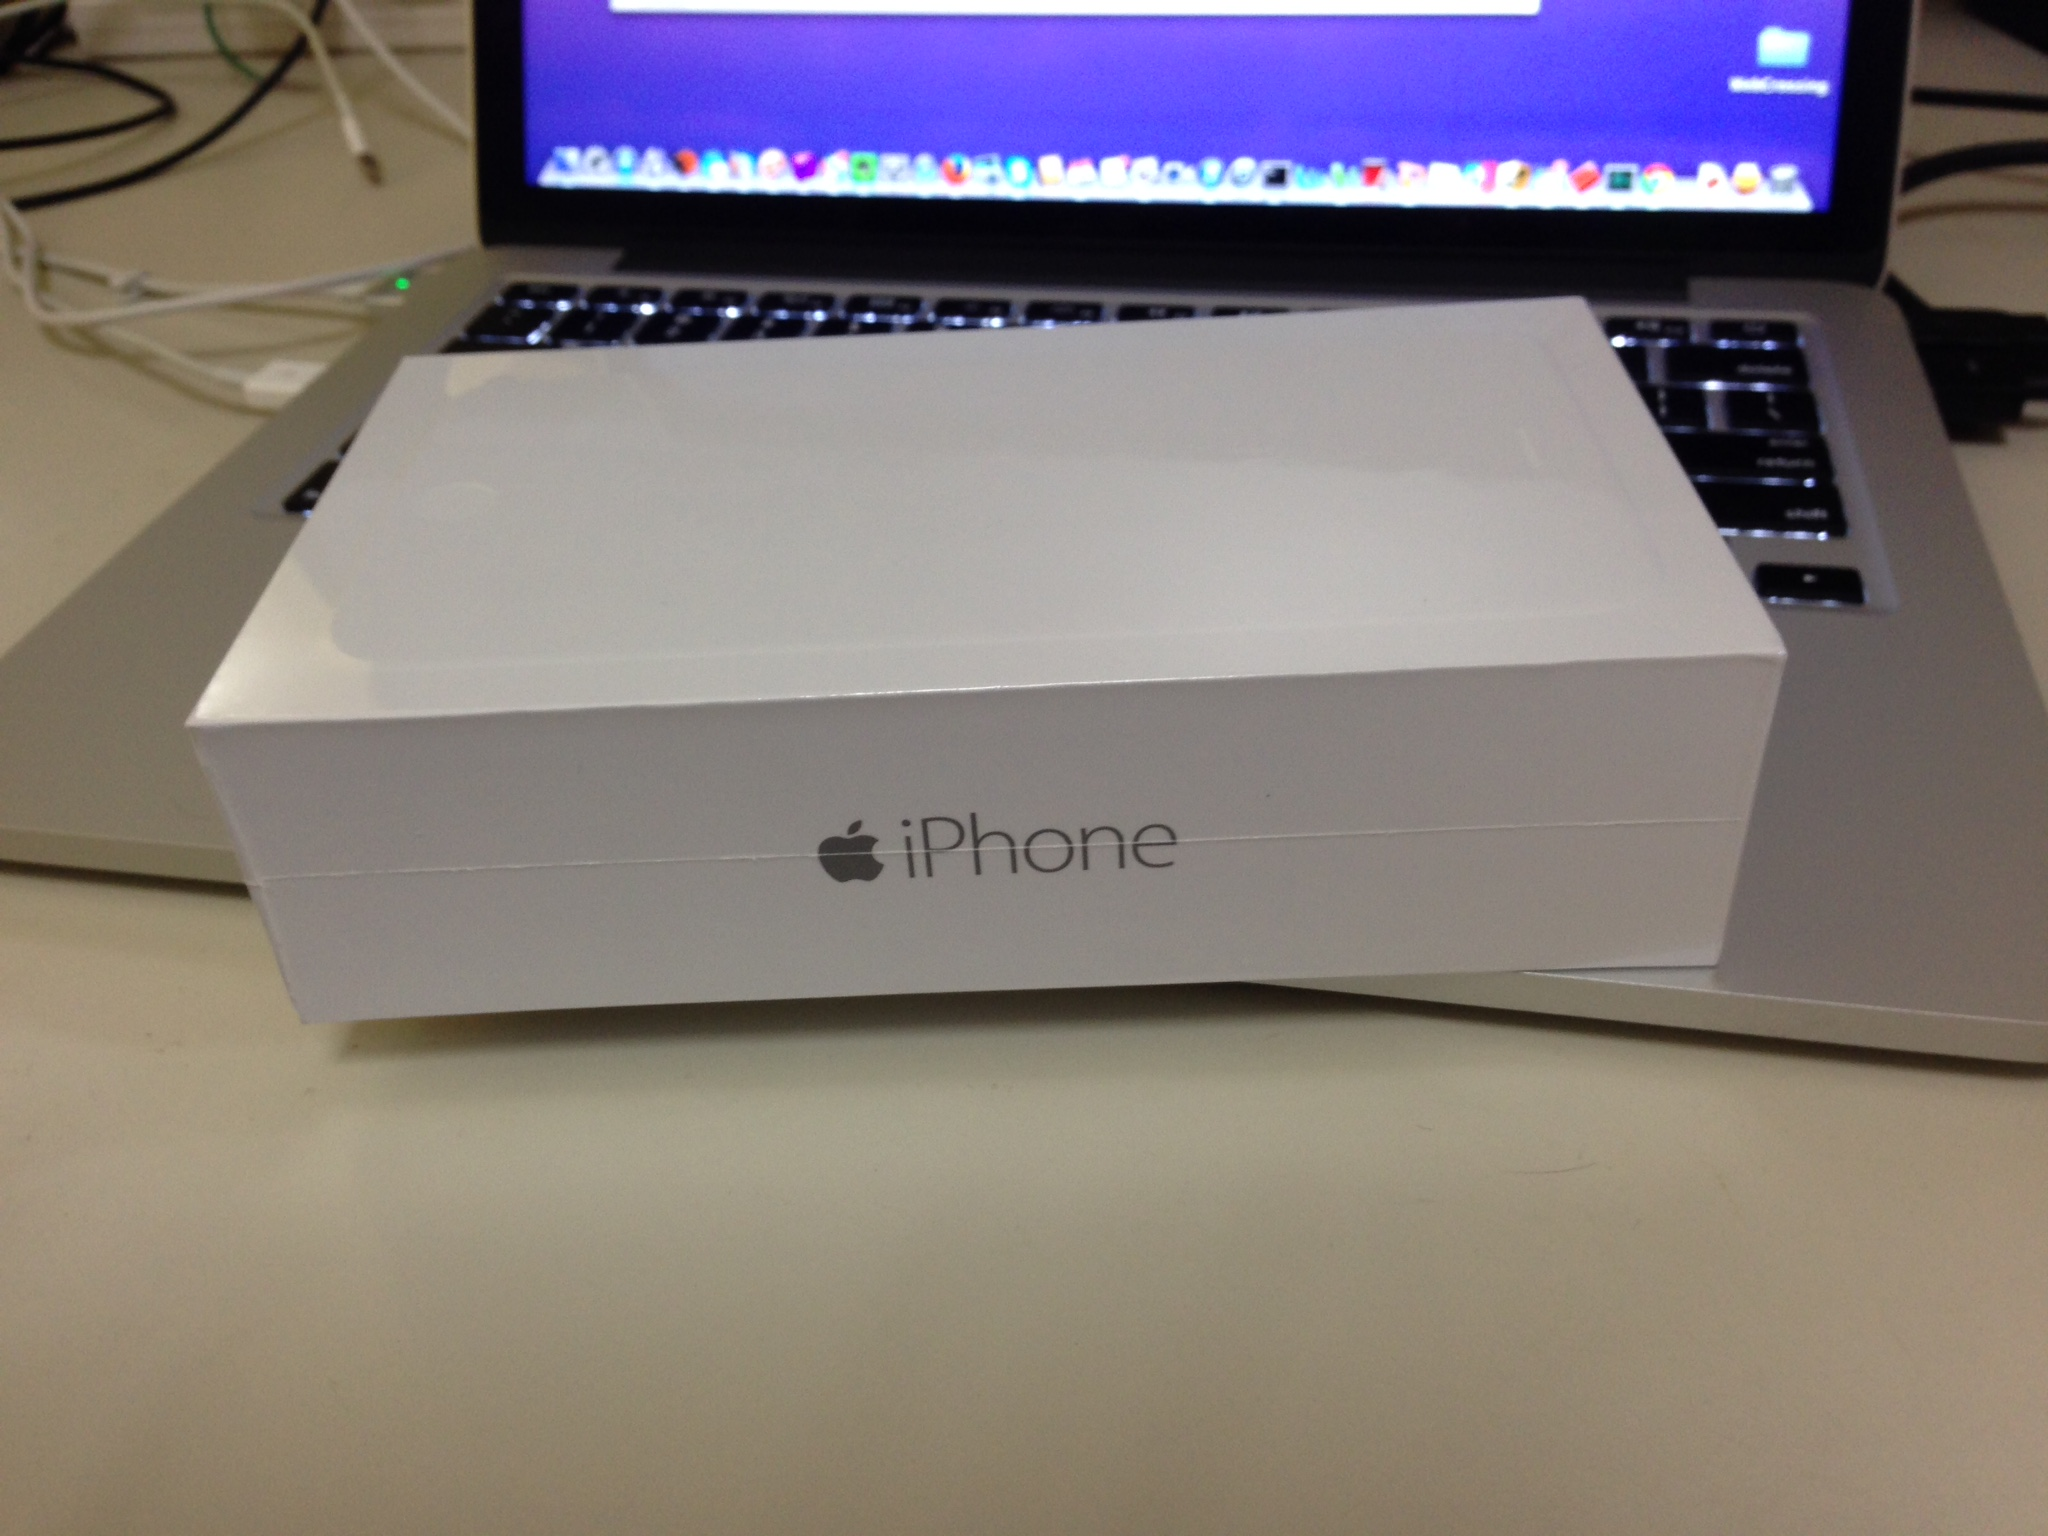 iphone 6 box doug s review of his new iphone 6 plus day 11296